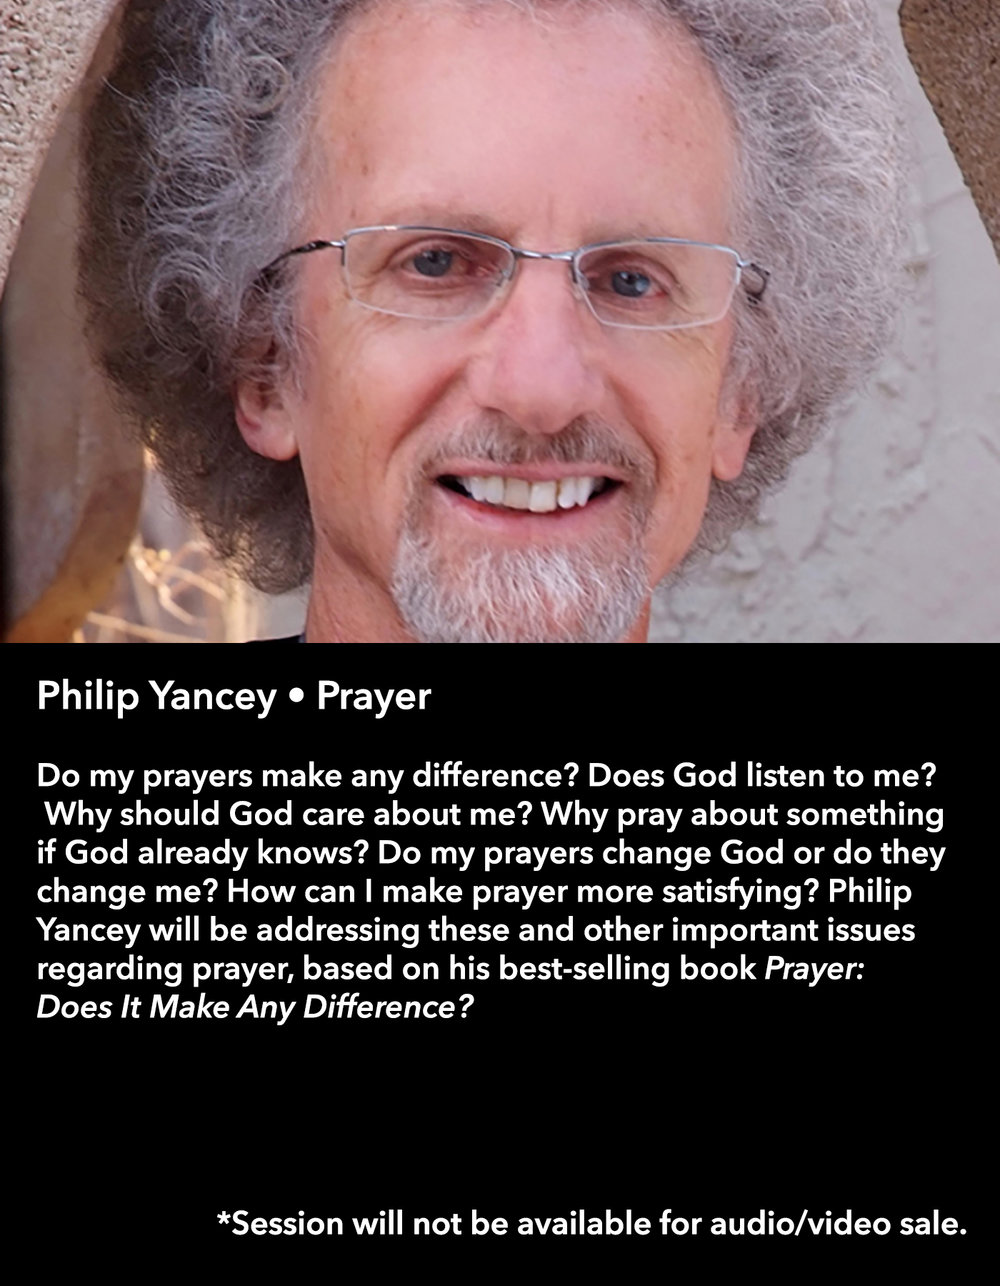 Philip Yancey • Prayer • Thursday Night, March 16 • 8:30 pm – 9:45 pm